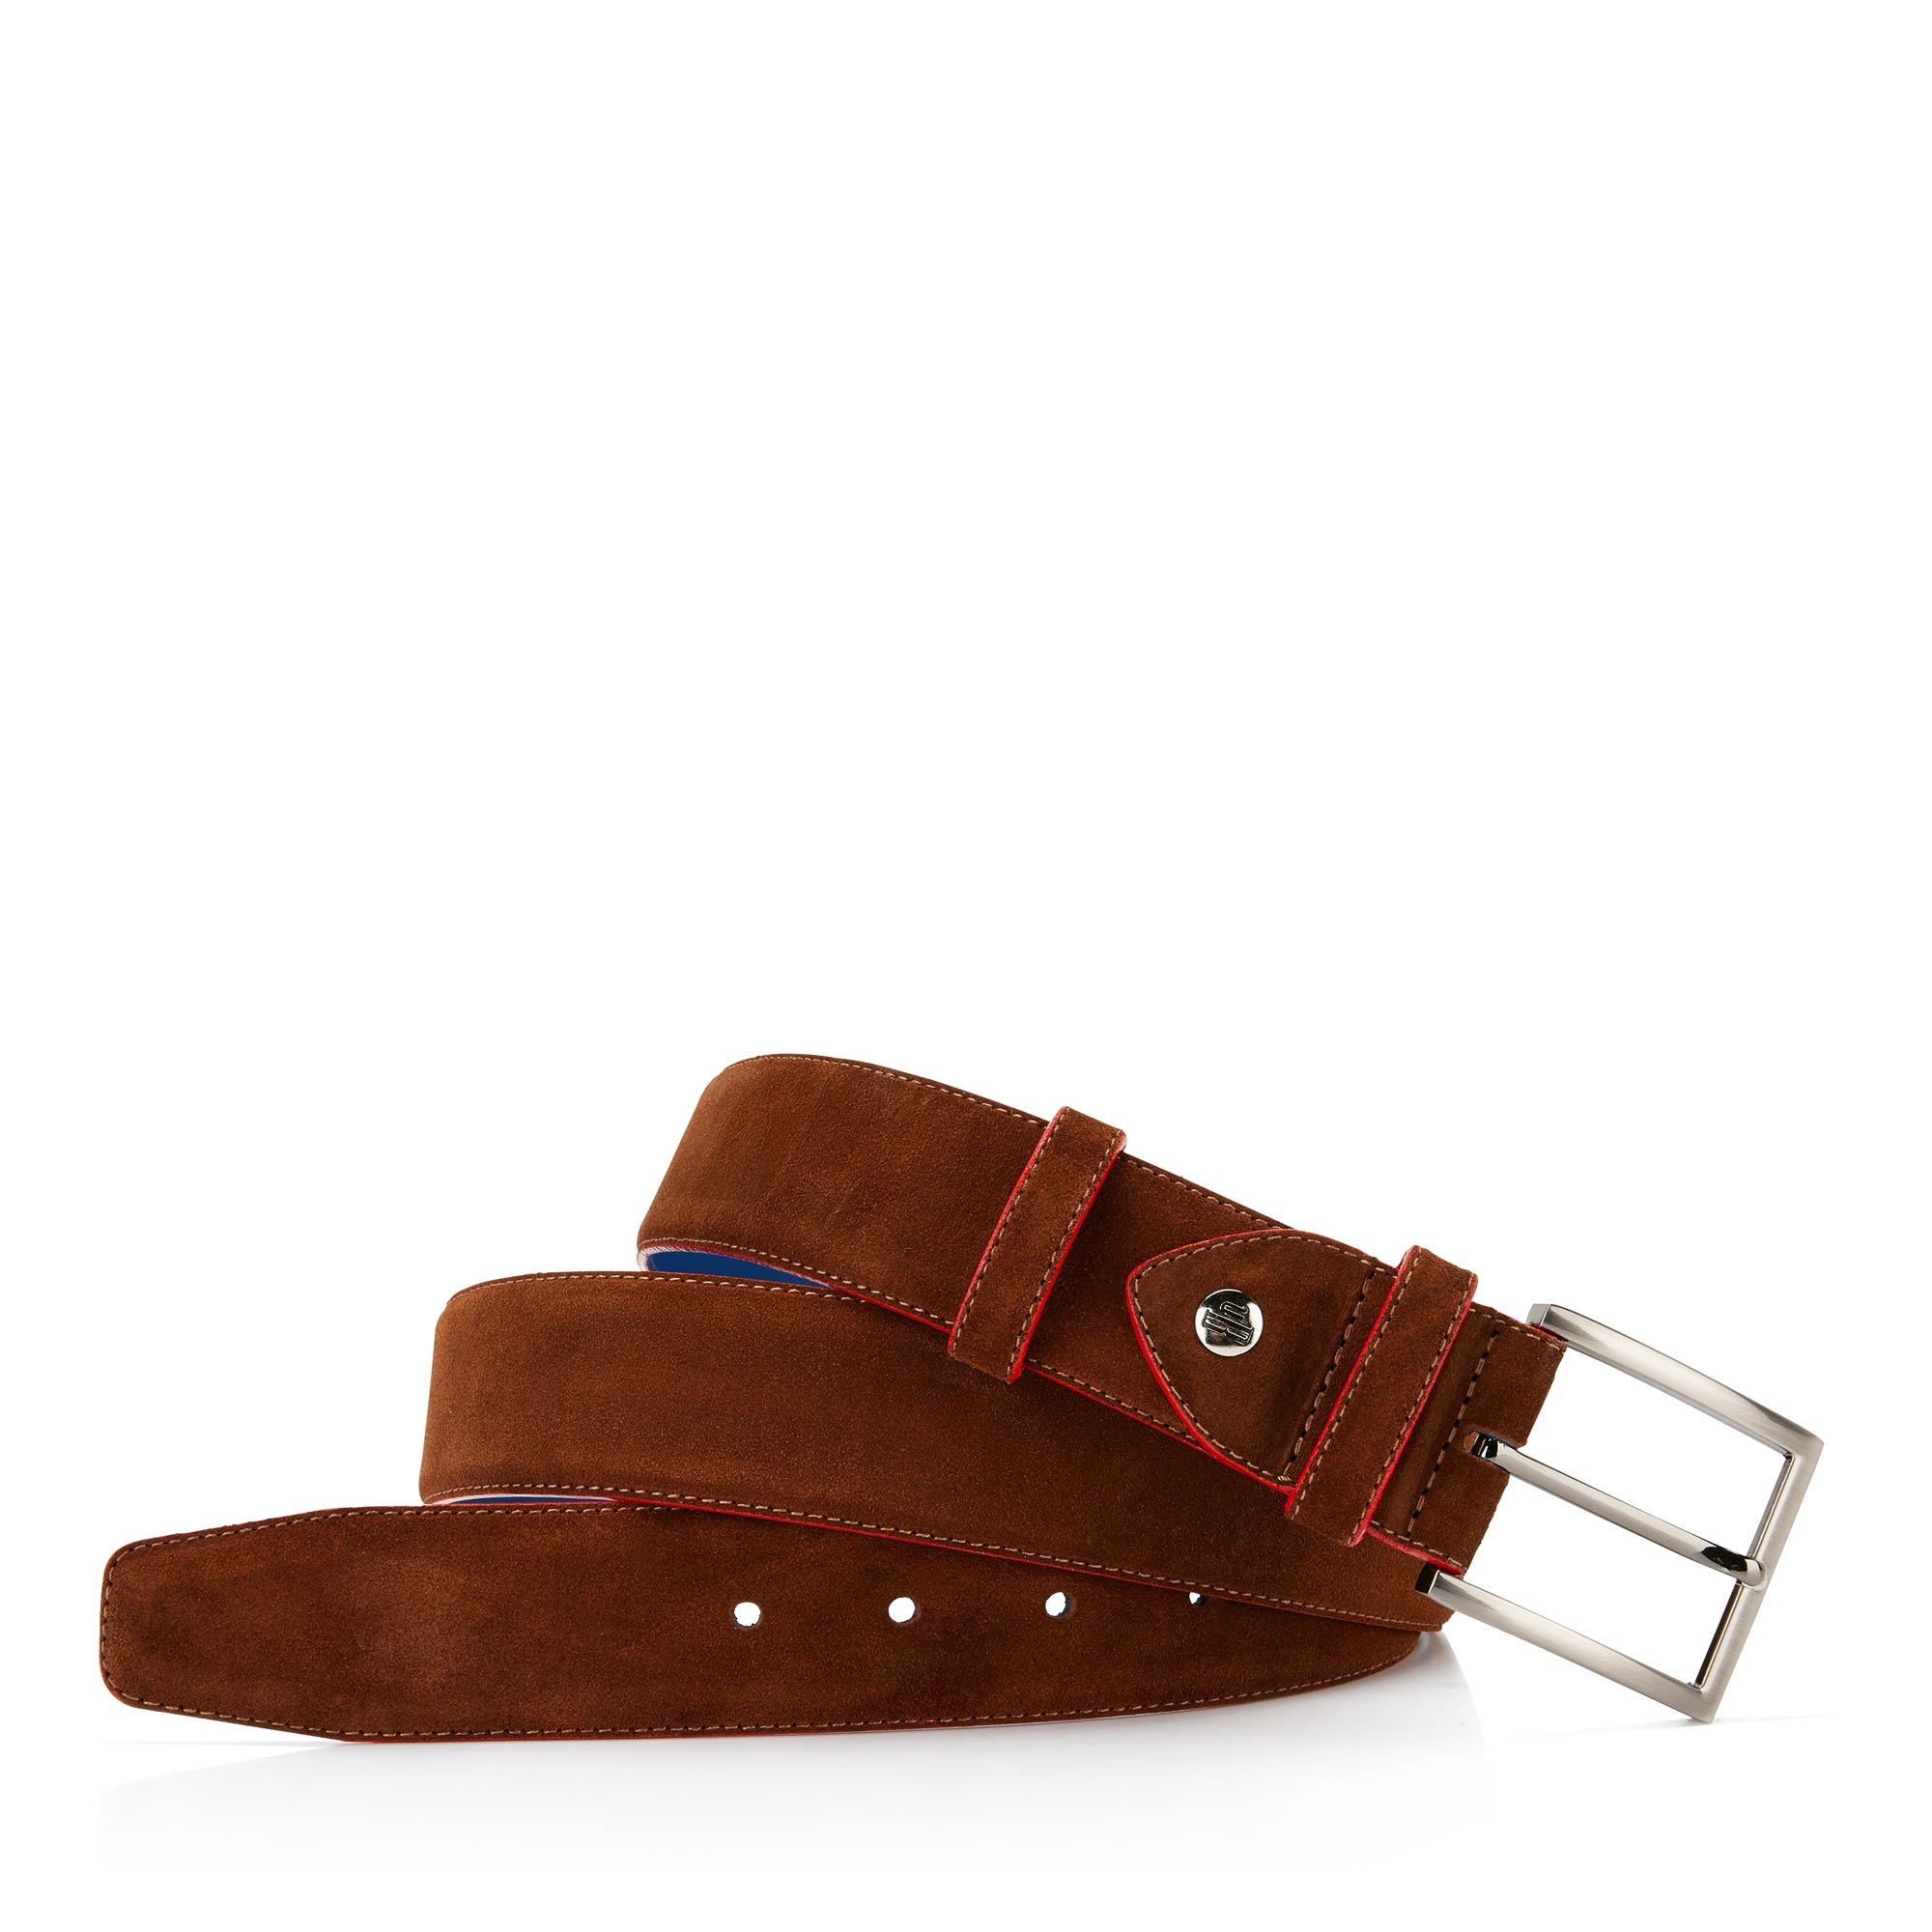 75037/07 - Brown suede leather belt